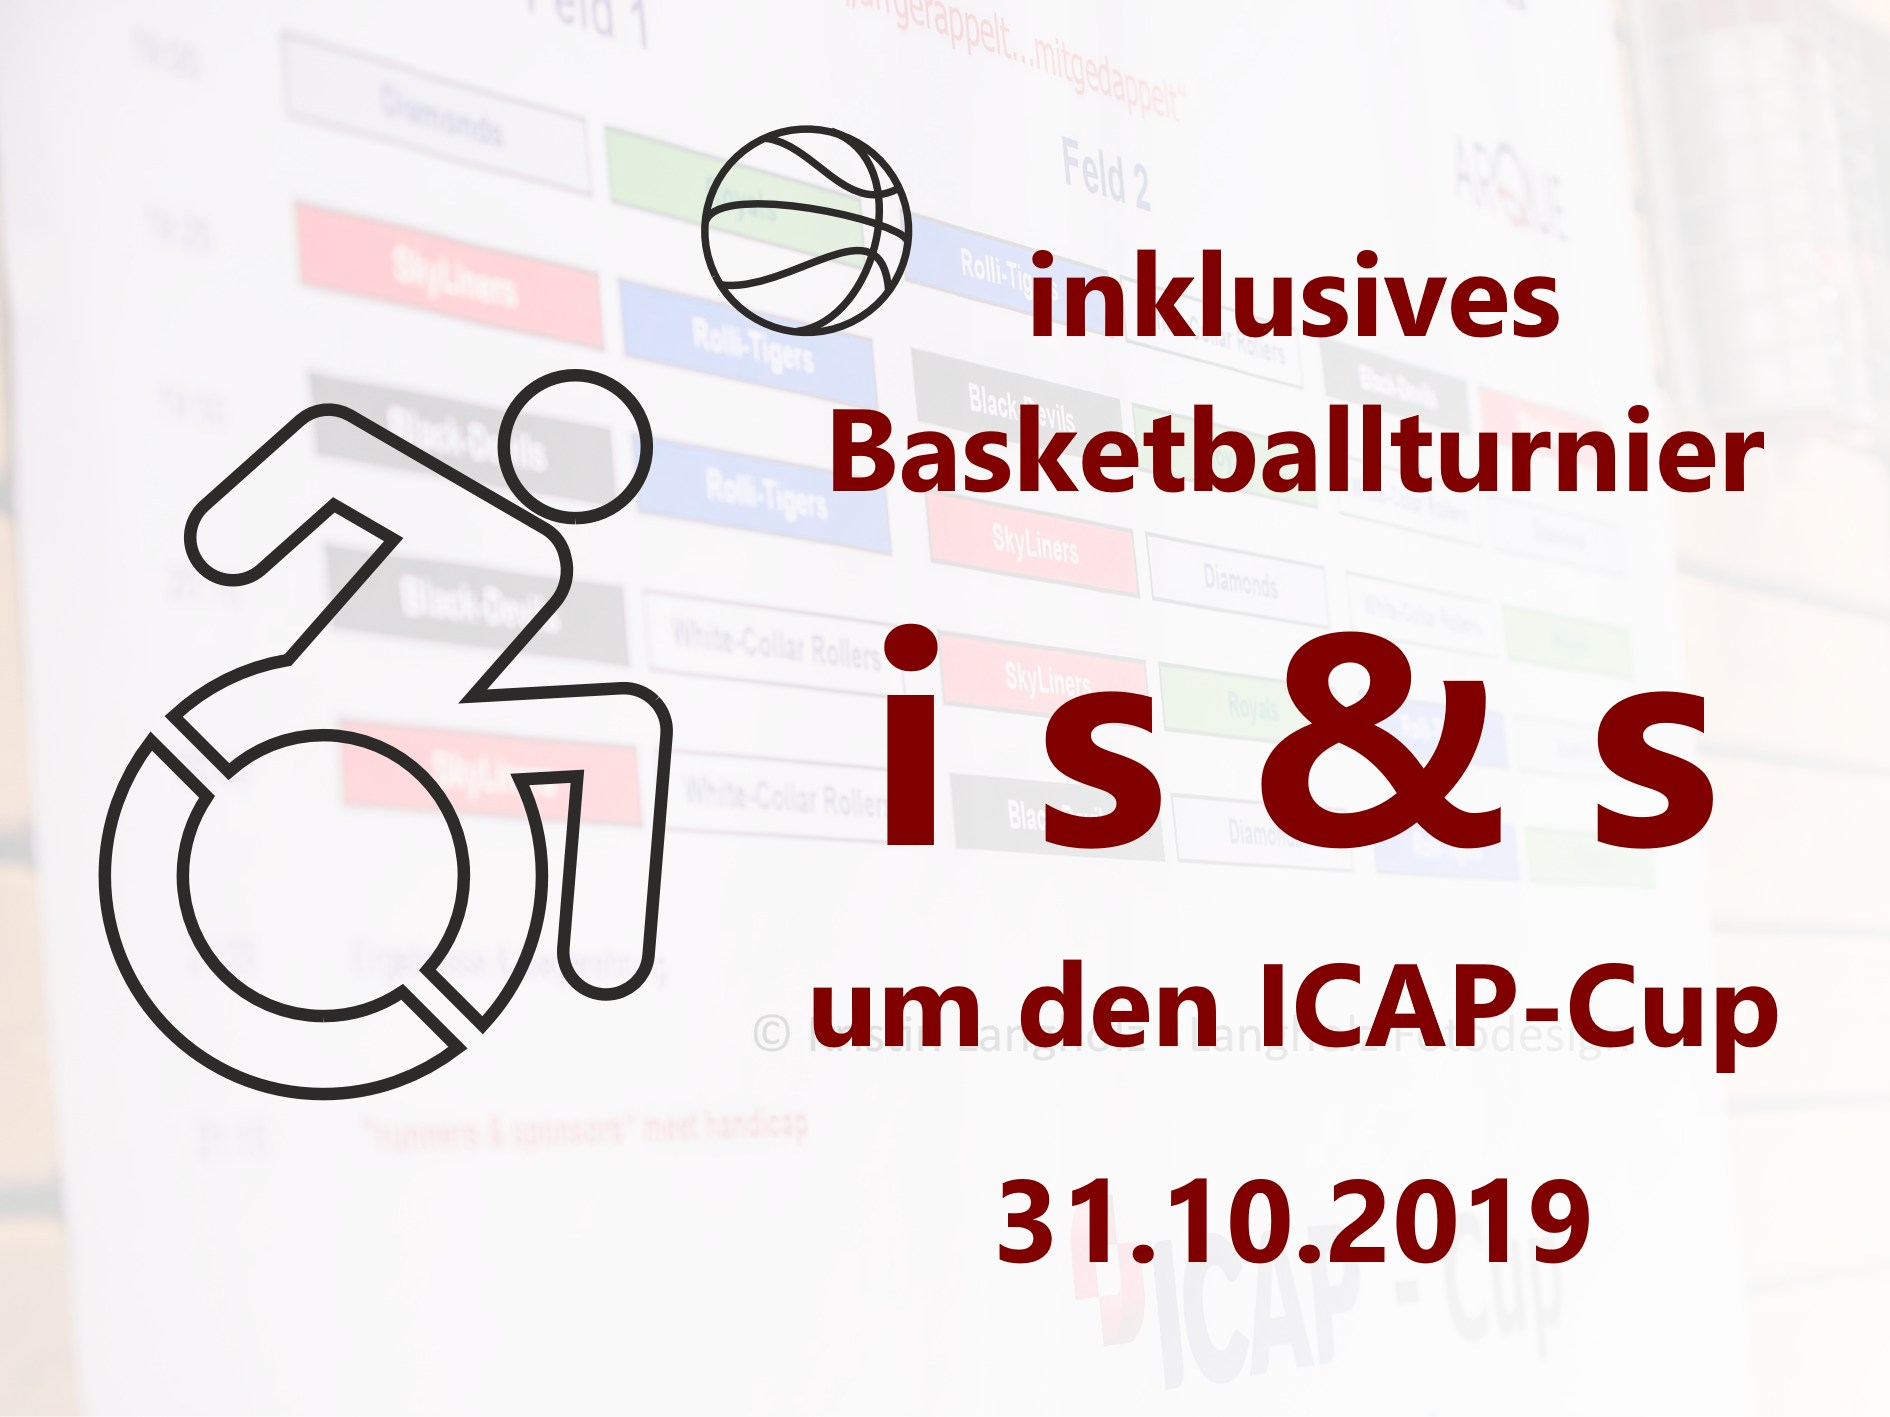 iss Werbung mit accessible icon 31.10.2019